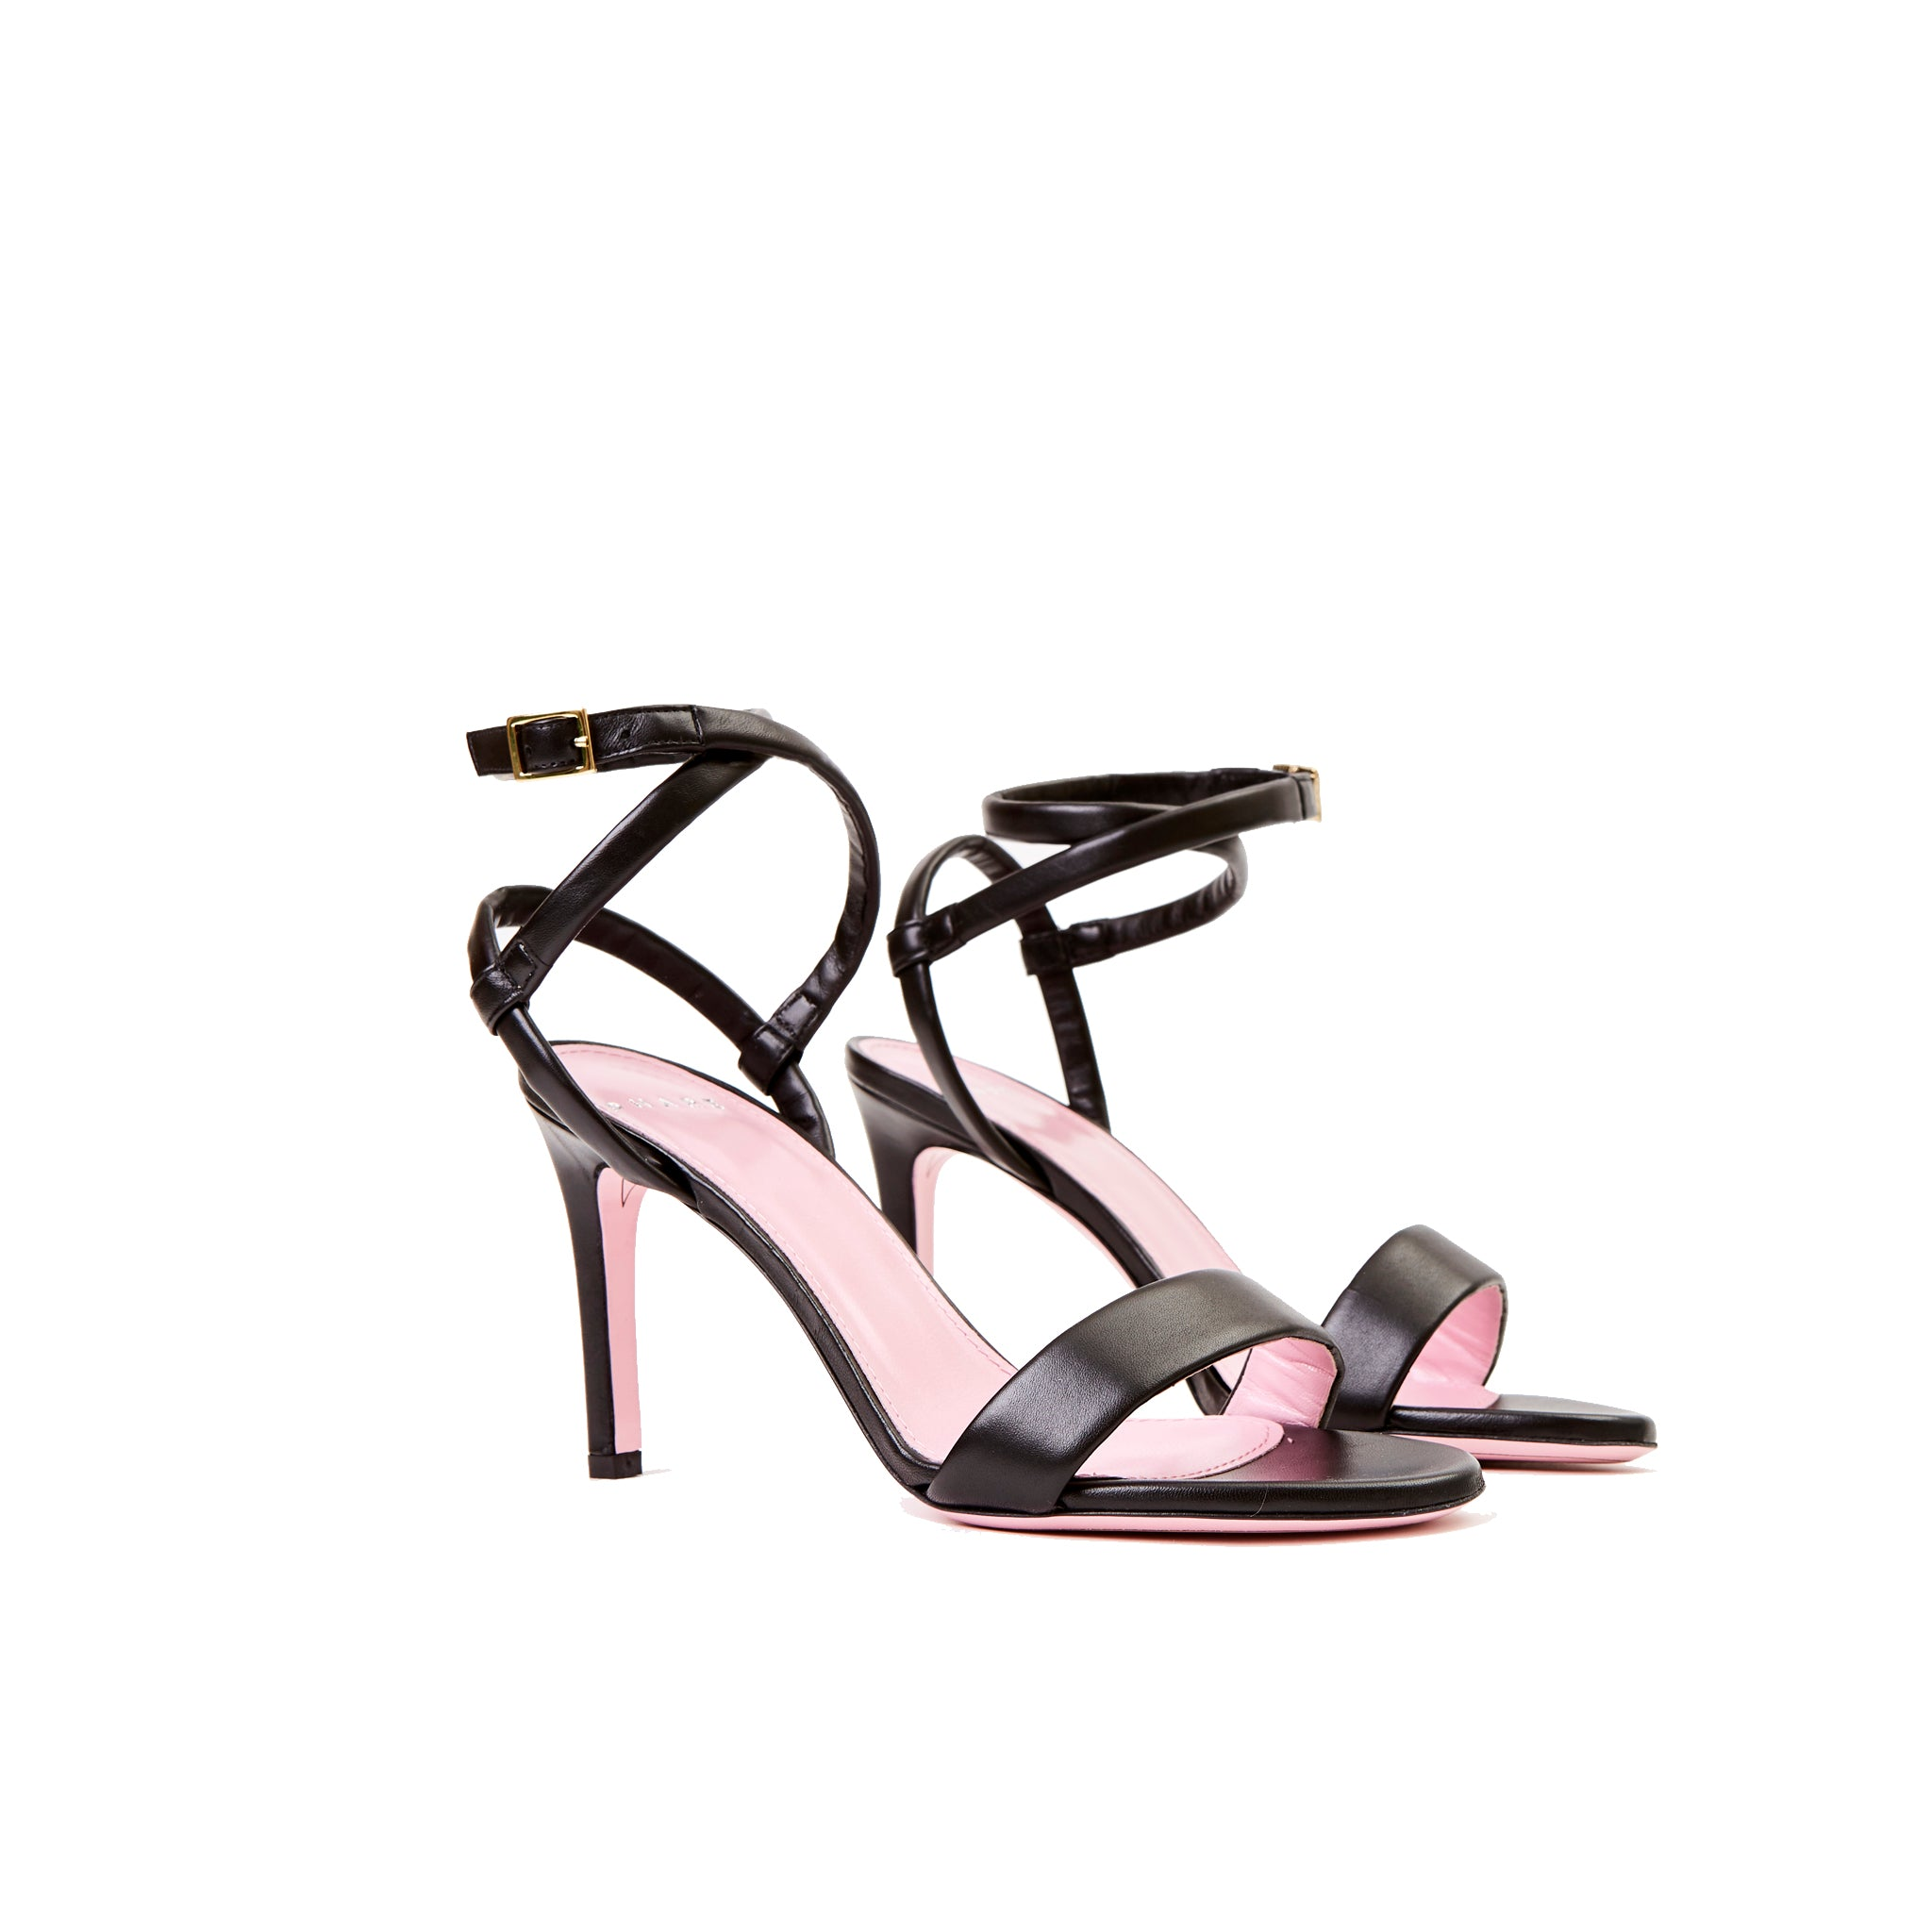 Phare Wrap ankle strap high heel sandal in black leather 3/4 view